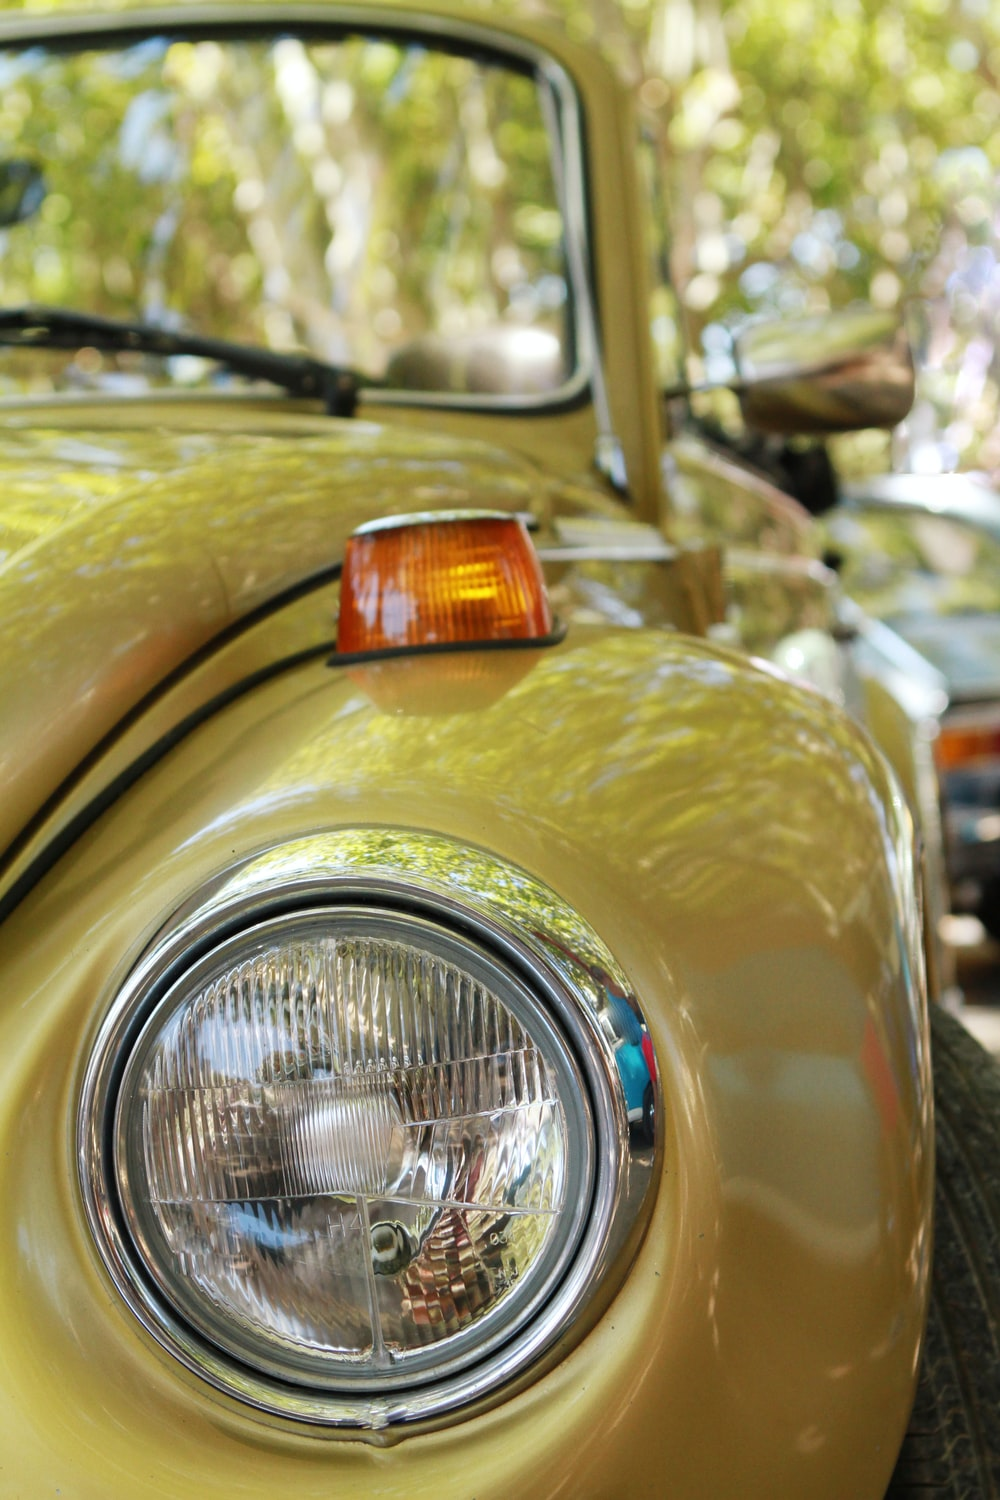 yellow car with silver headlight